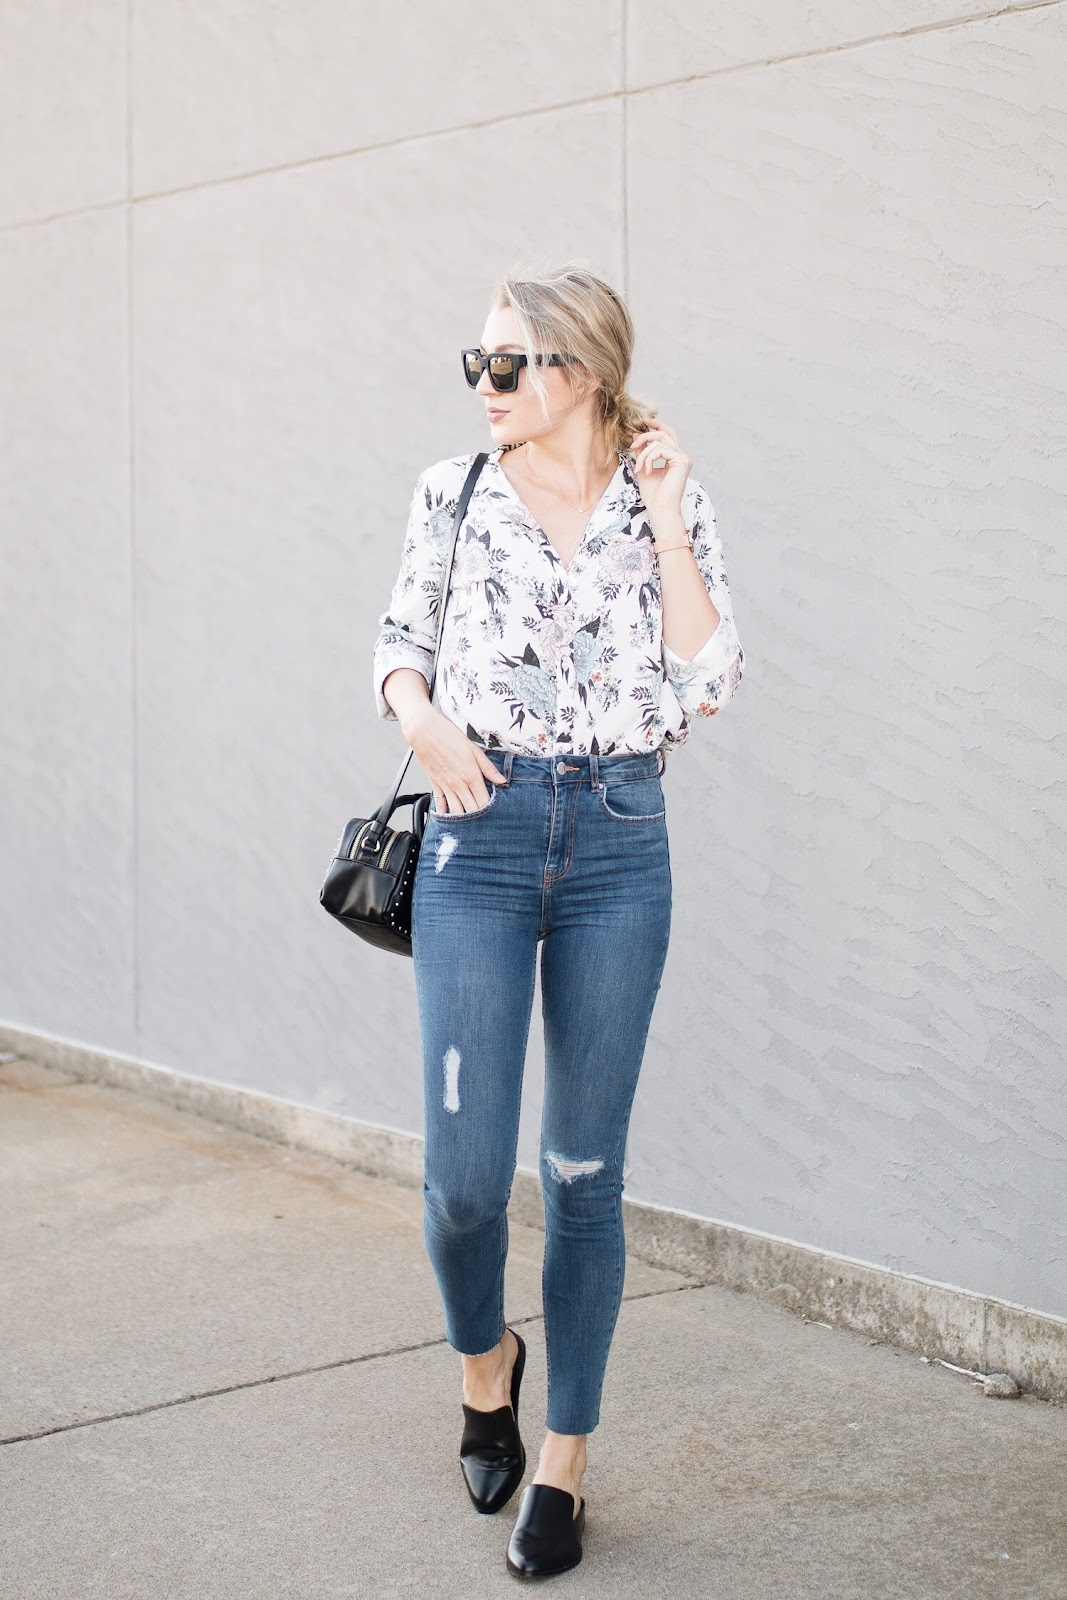 floral top with high-waisted skinny jeans - both under $30